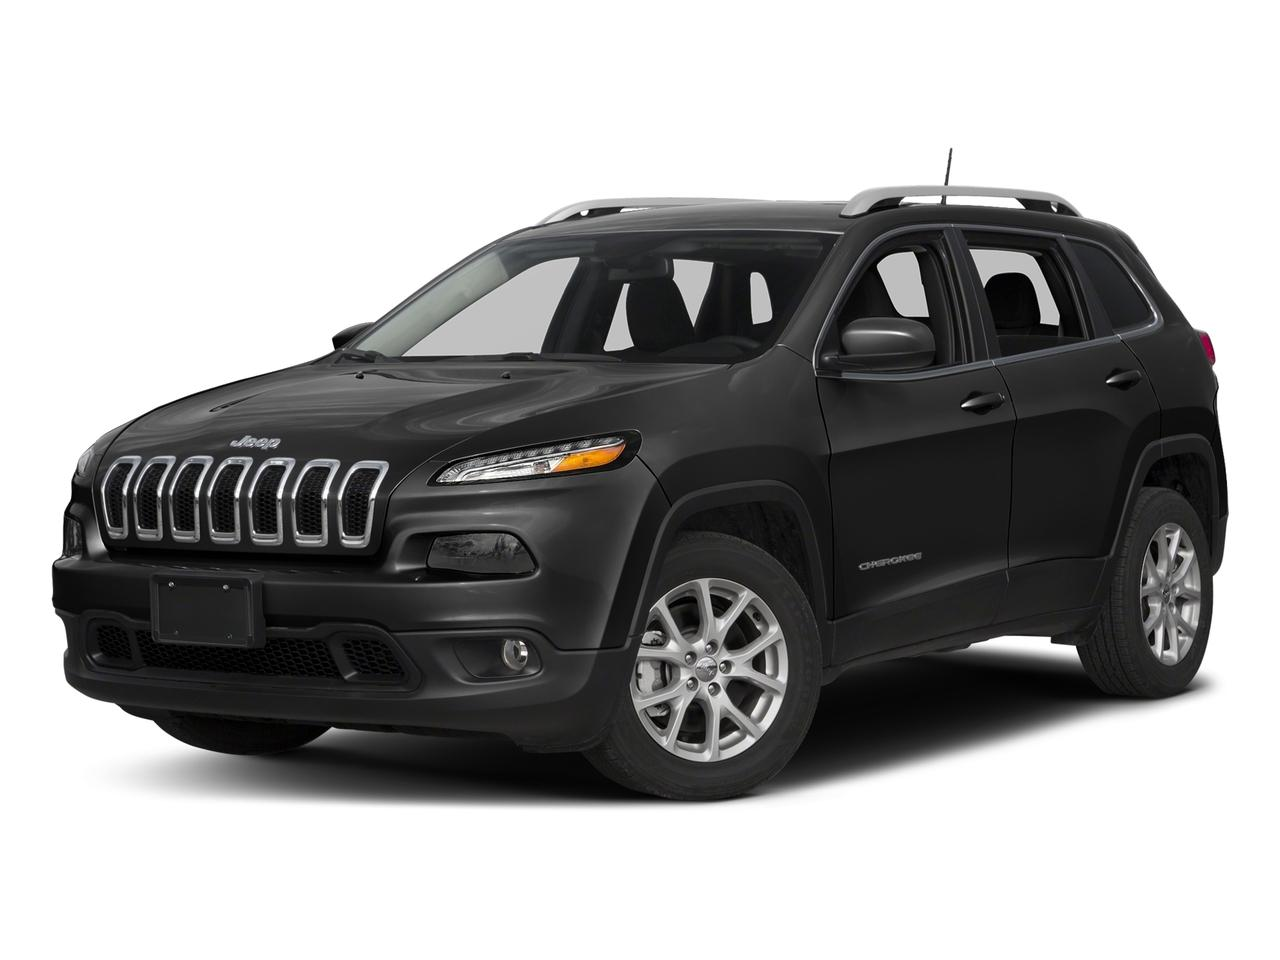 2018 Jeep Cherokee Vehicle Photo in Tucson, AZ 85705